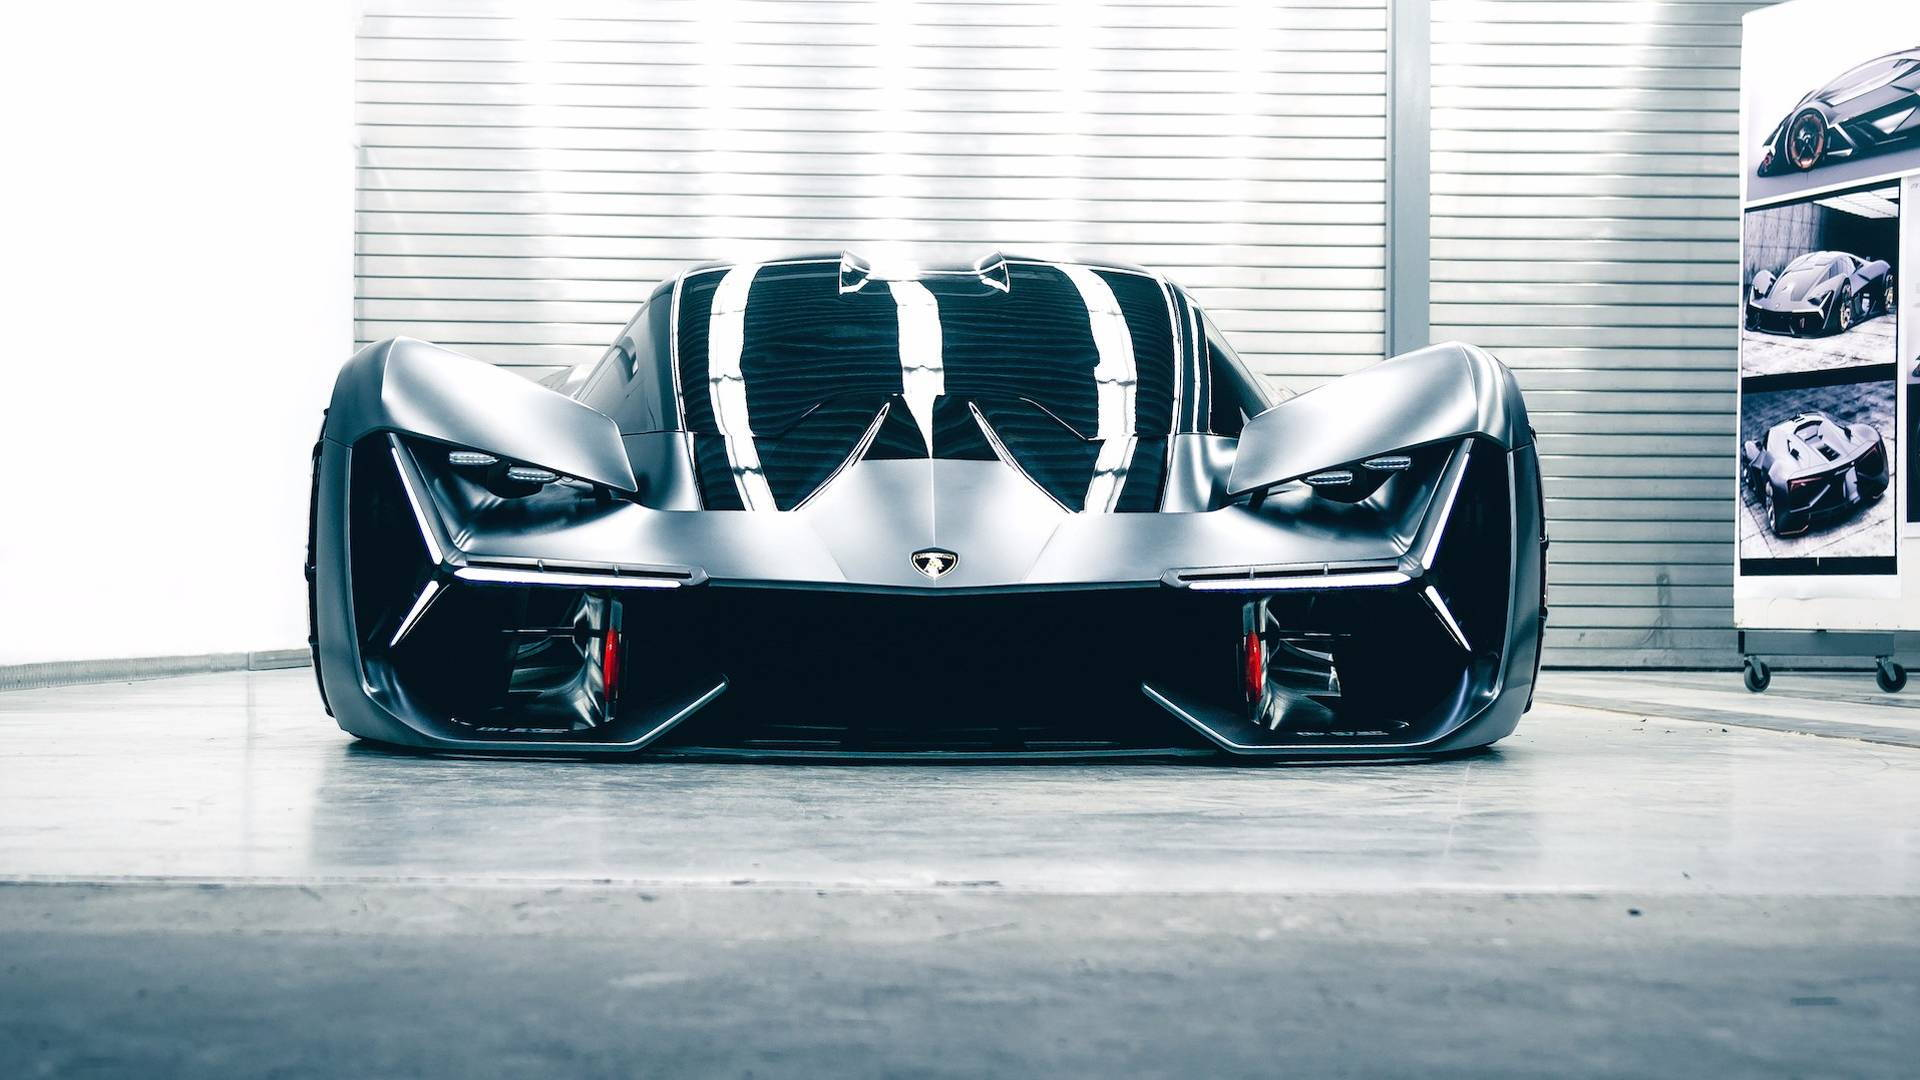 Lamborghini Terzo Millennio Concept Electric Car Unveiled Hints At